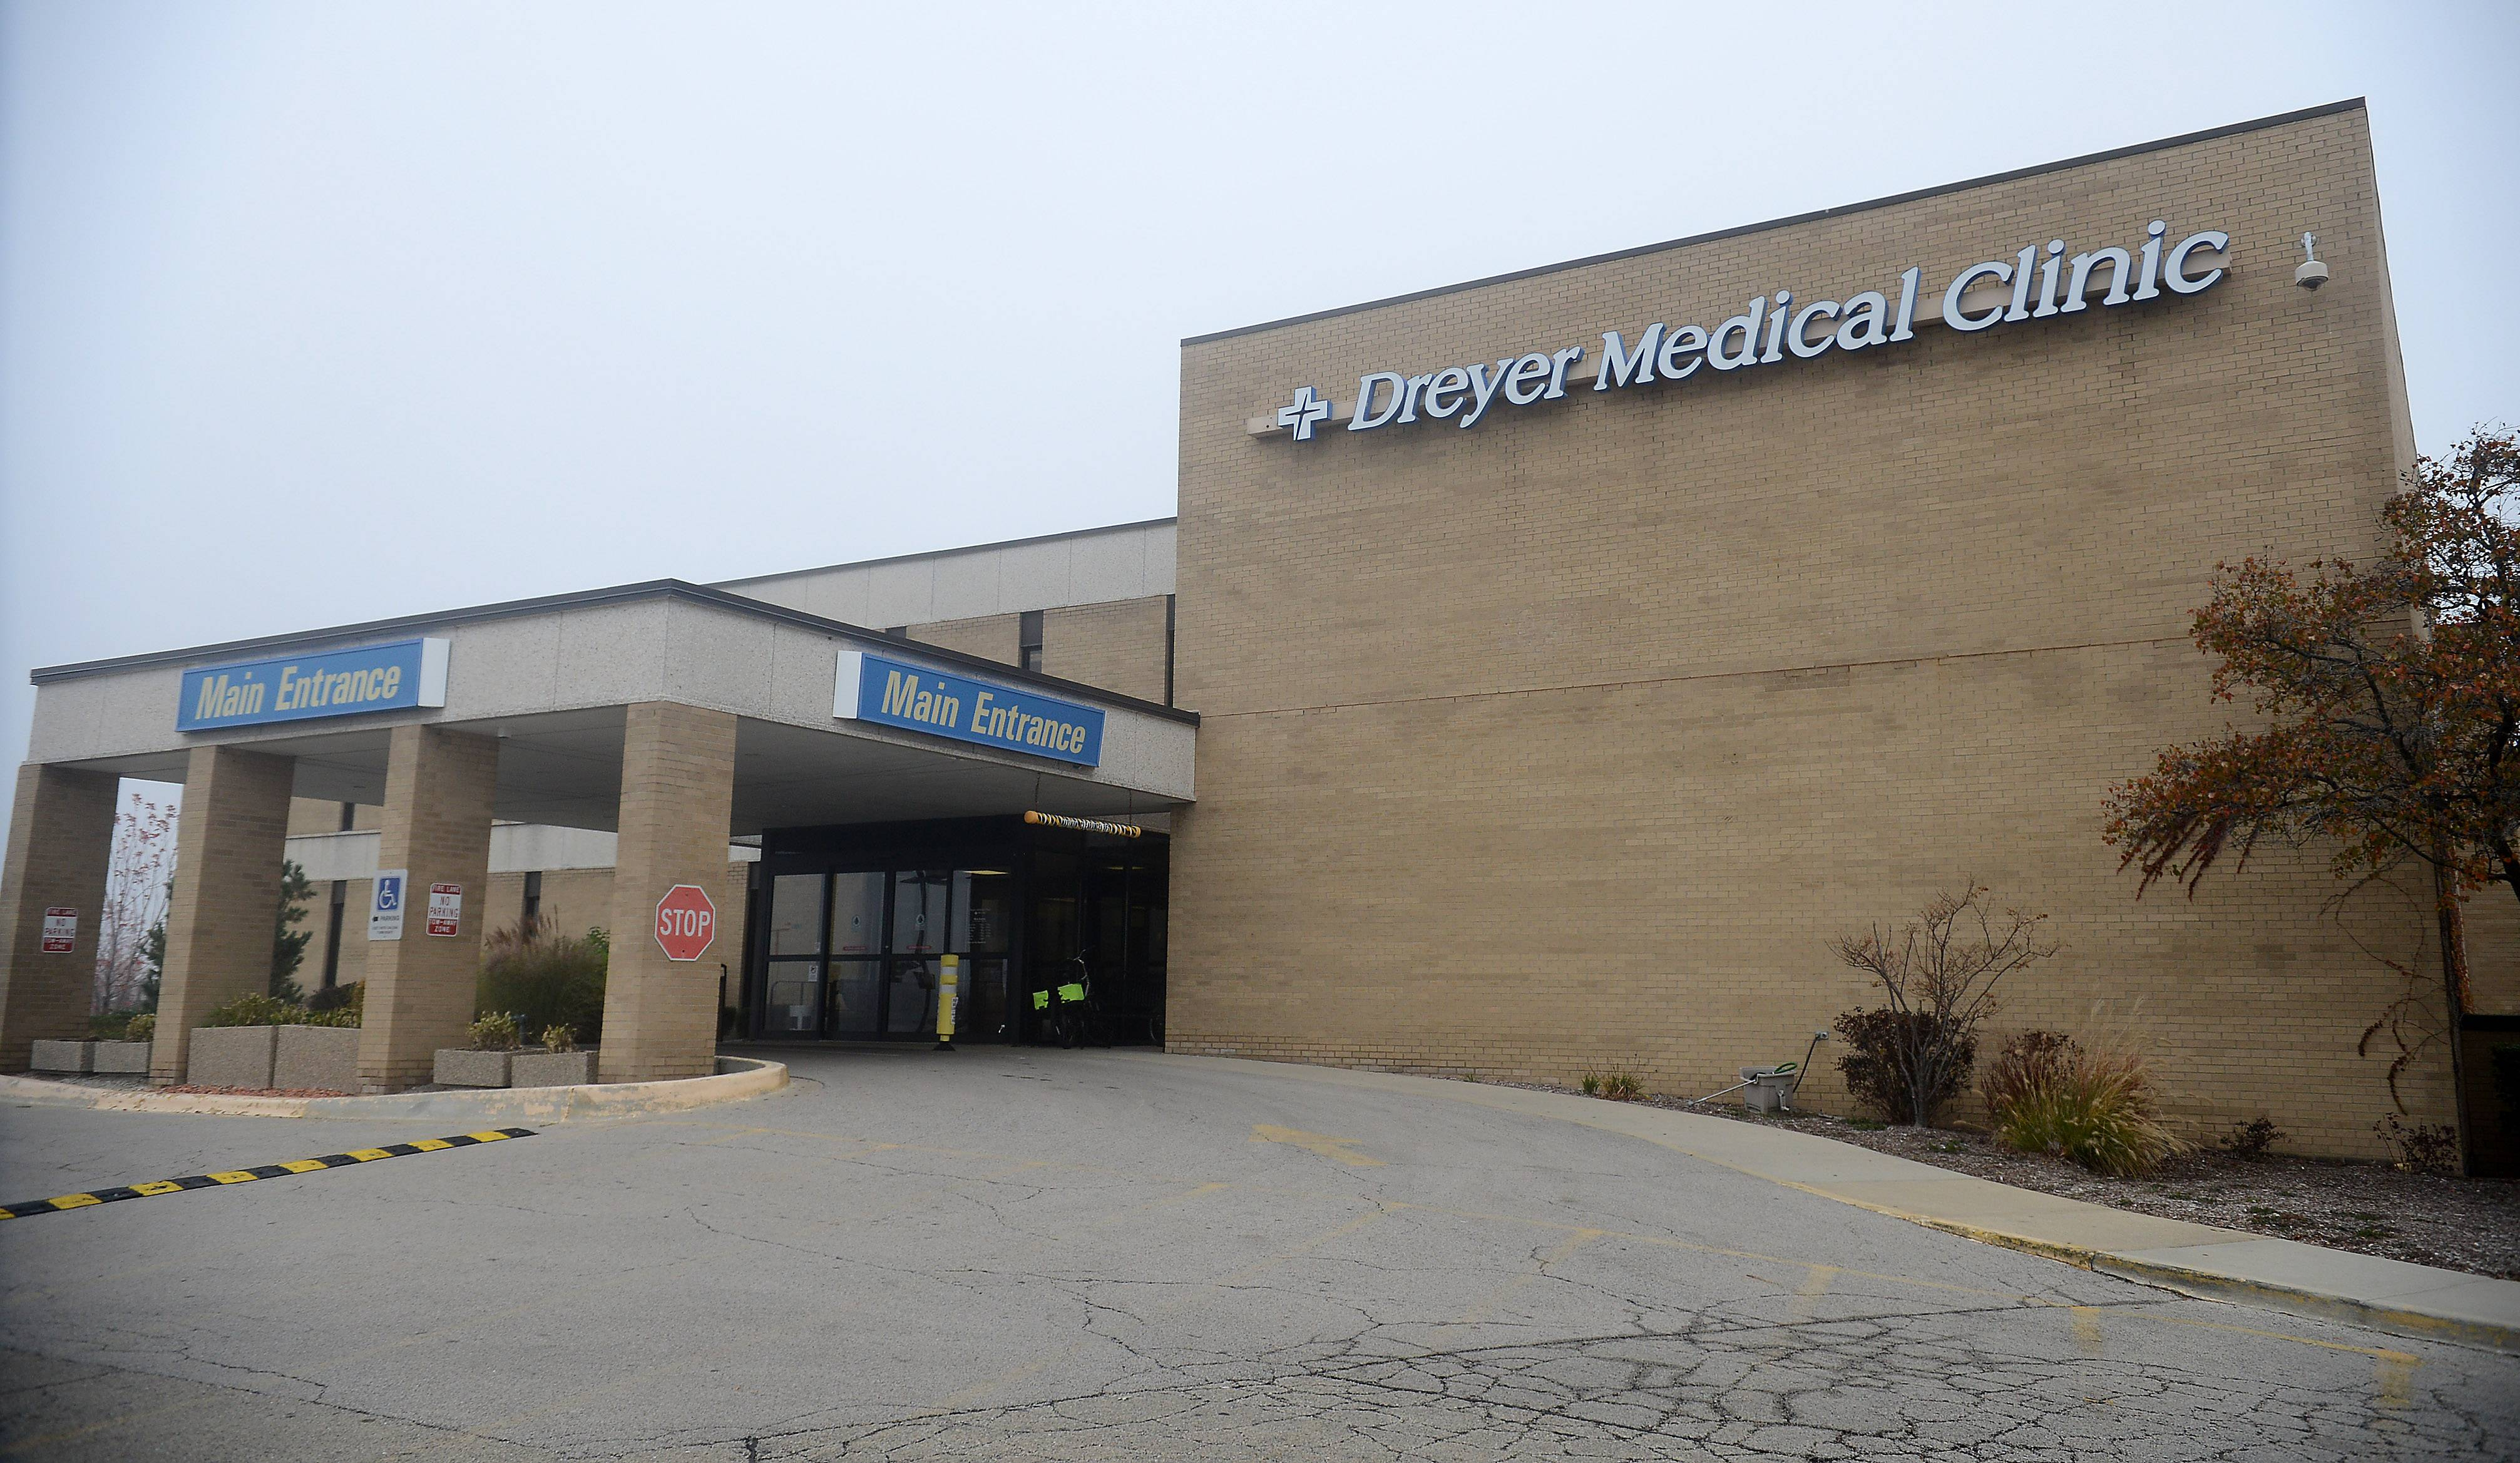 The former Dreyer Medical Clinic at 1870 W. Galena Blvd. is getting remodeled to accommodate West Aurora District 129 programs.